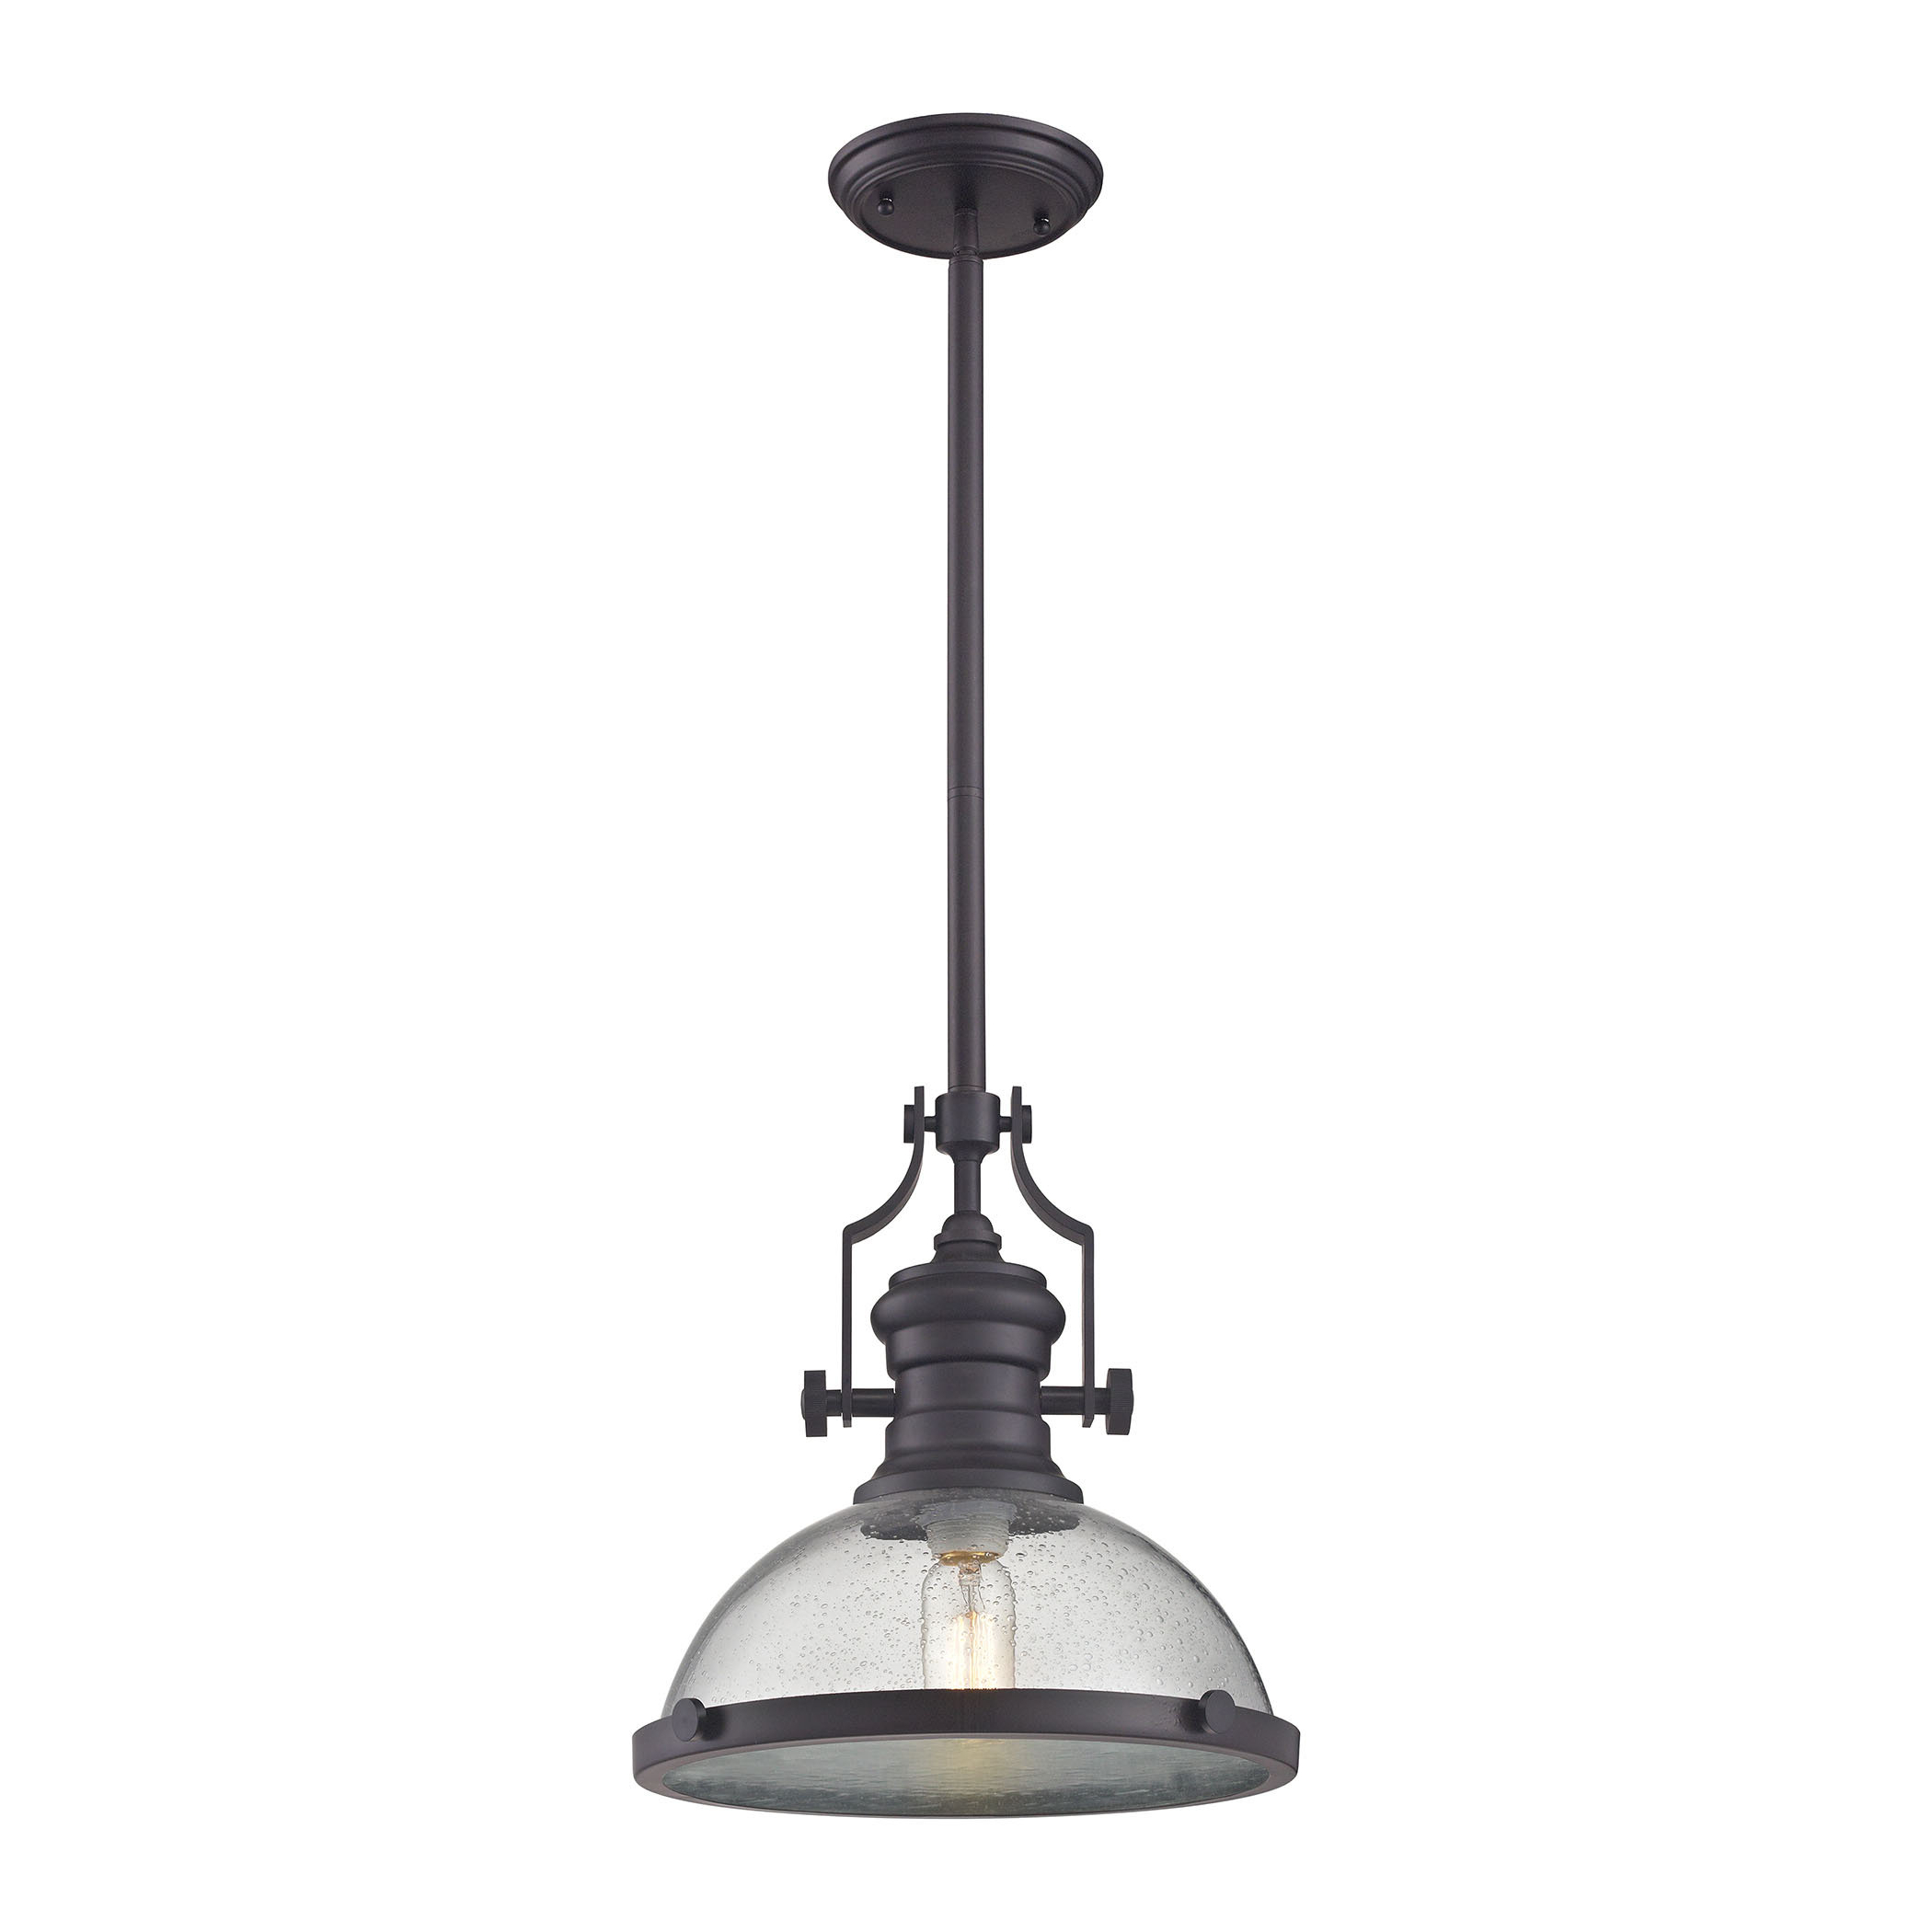 Well Liked Pewter & Silver & Satin Nickel Pendant Lighting You'll Love In Kimsey 1 Light Teardrop Pendants (View 20 of 25)